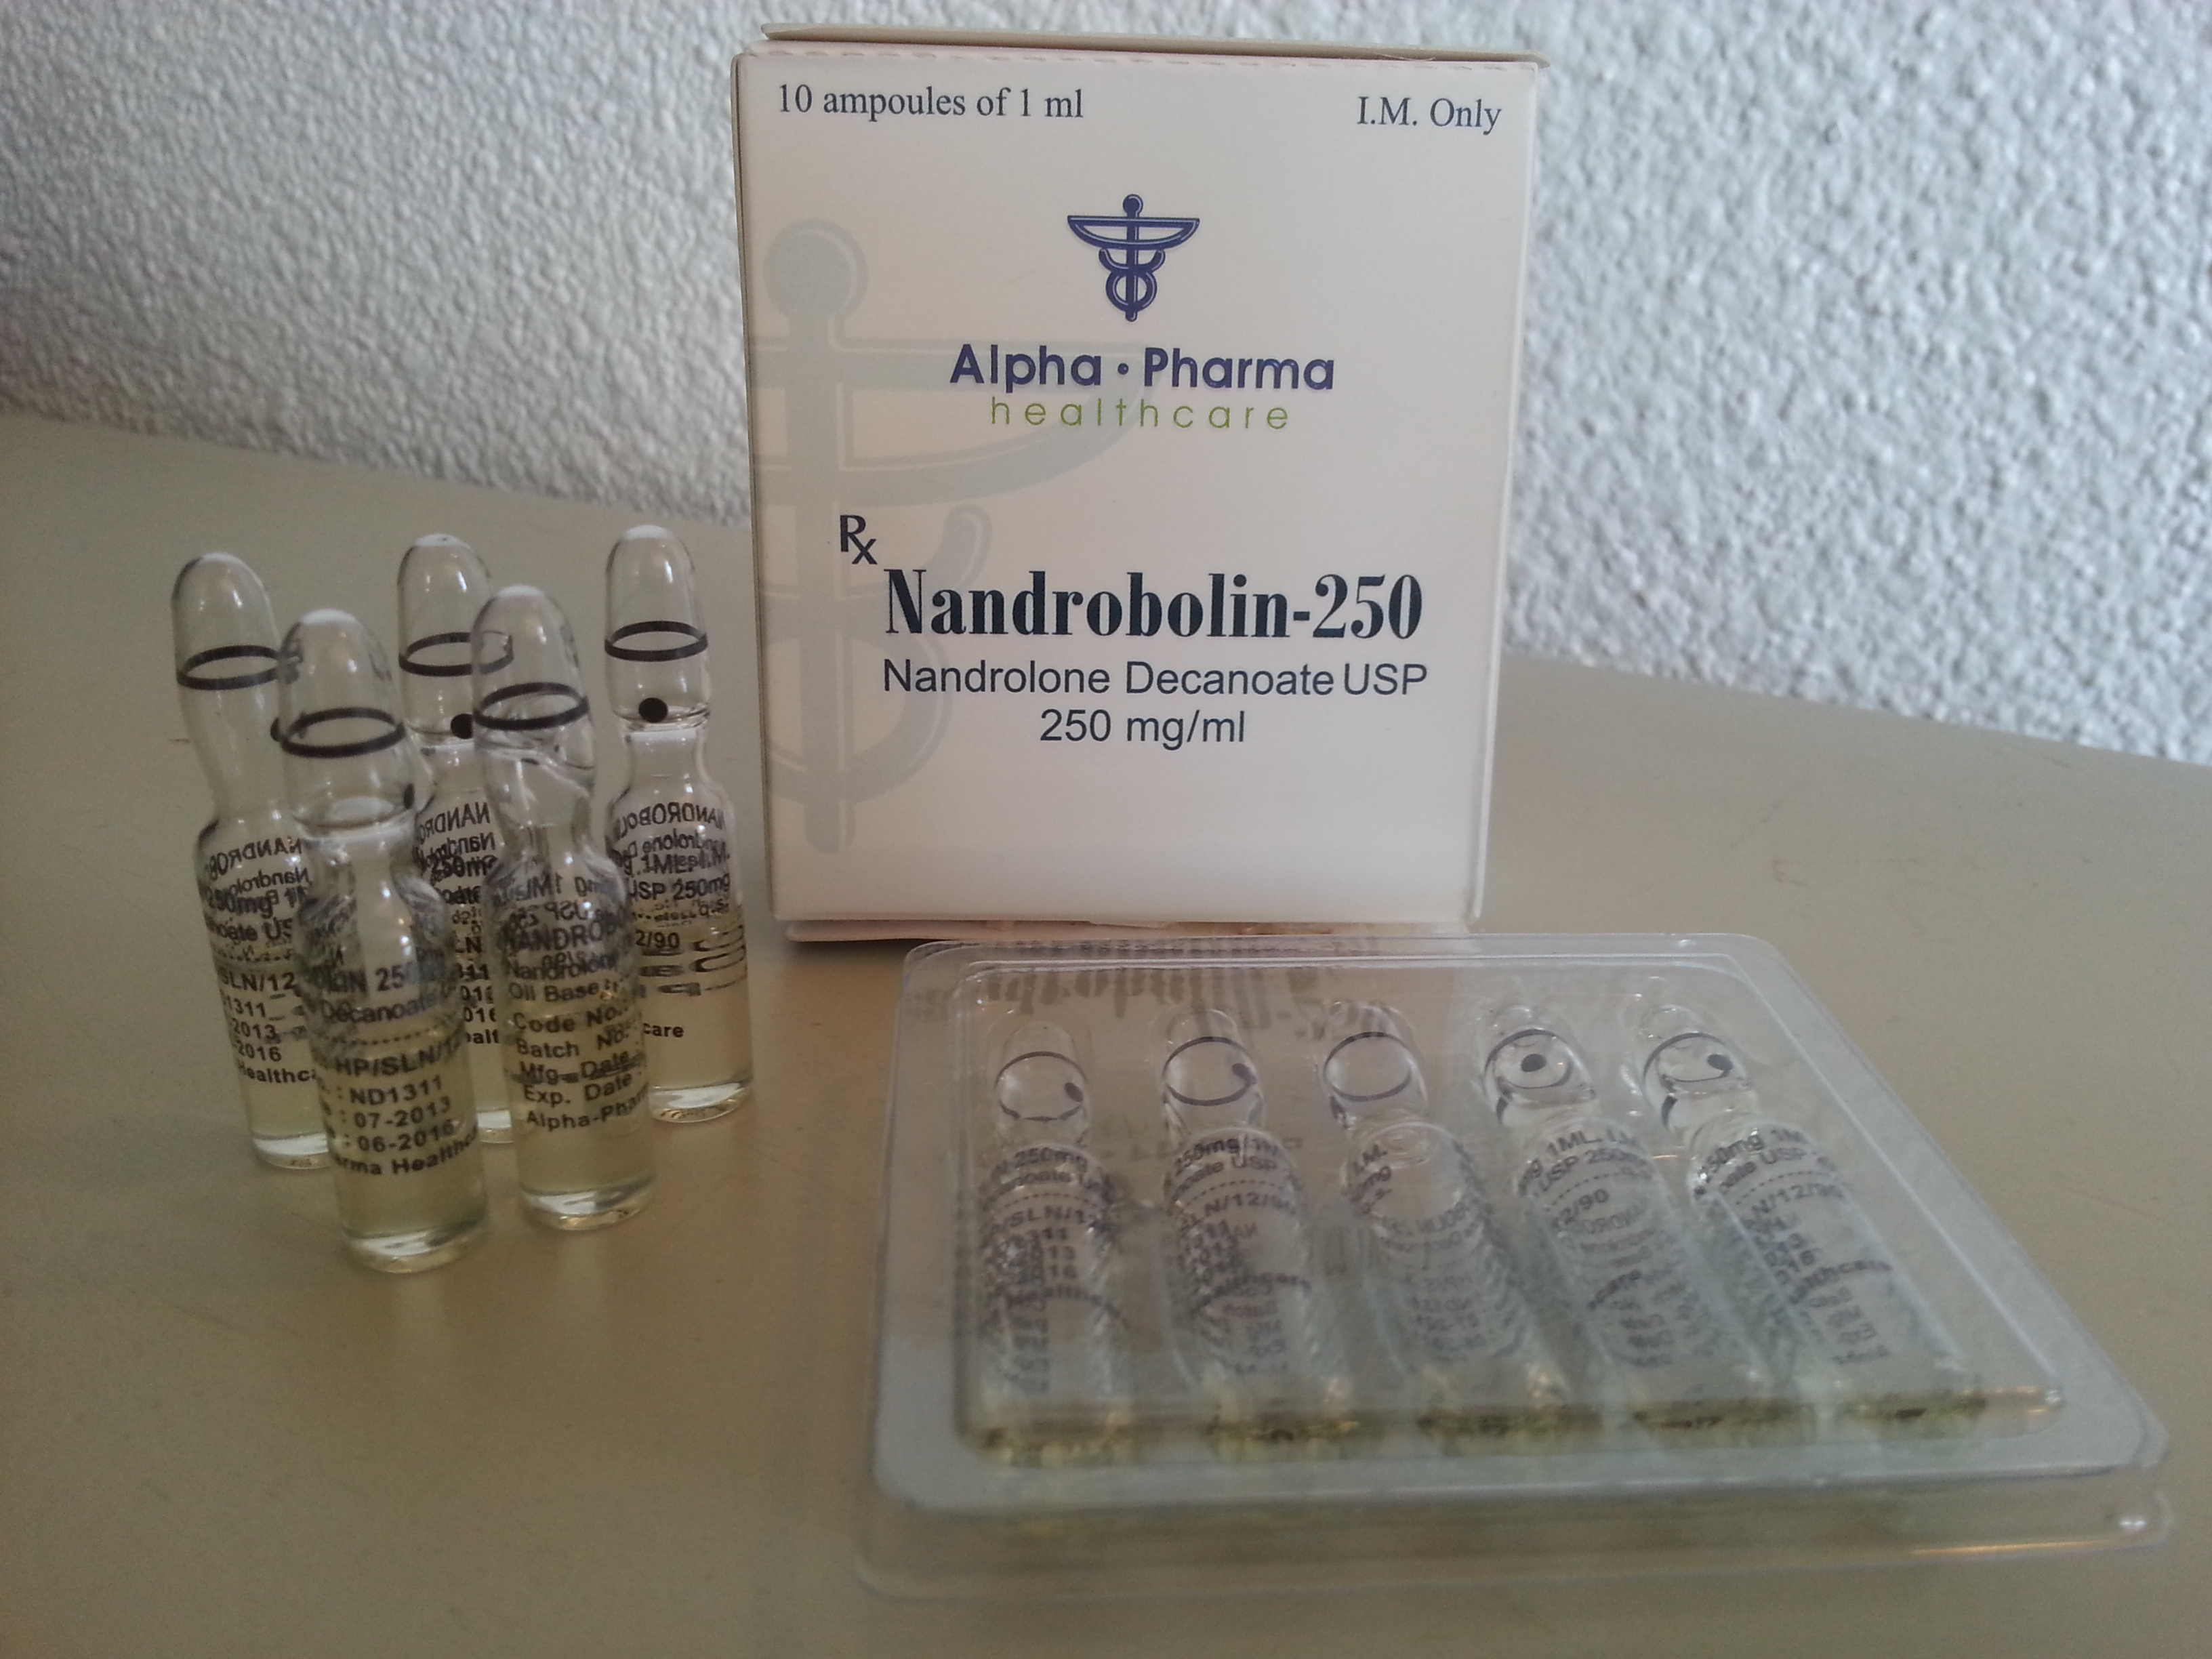 nandrolone decanoate prescription